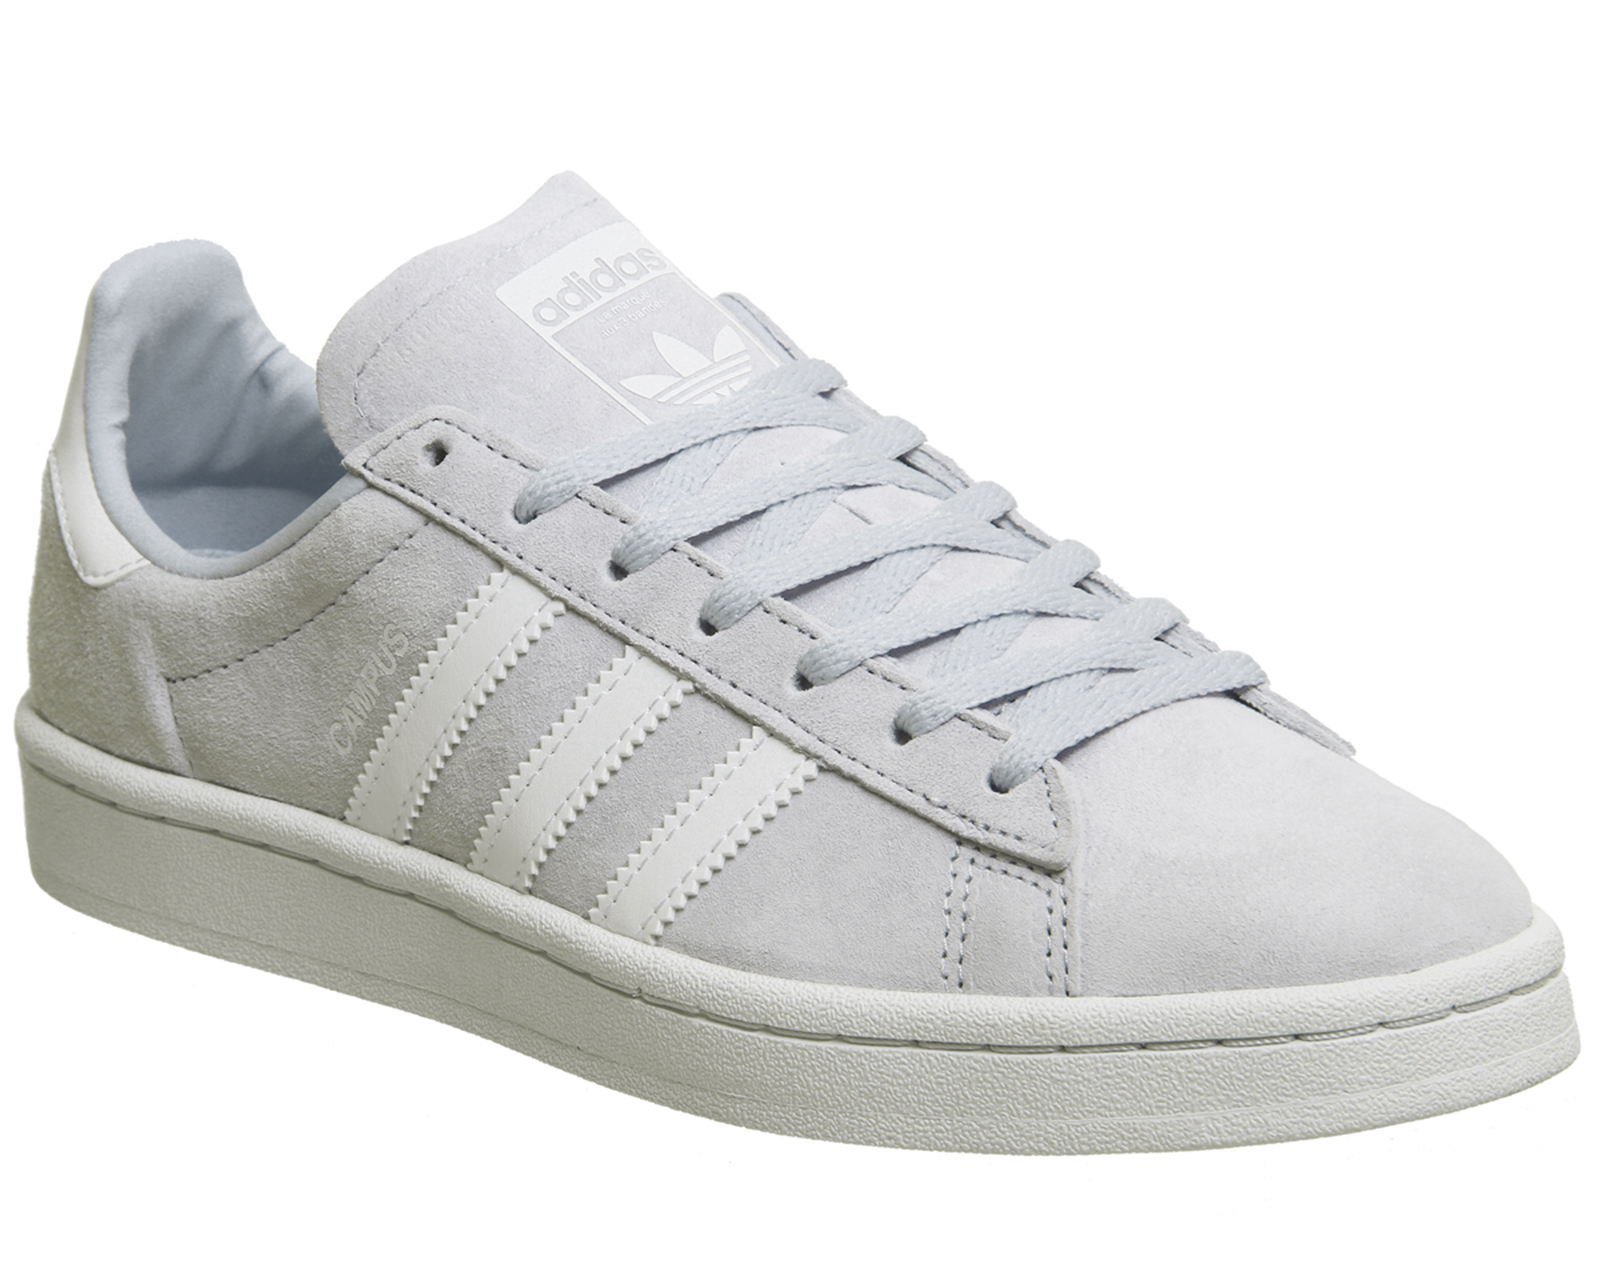 c56611a776e6 Sentinel Womens Adidas Campus Trainers Aero Blue Trainers Shoes